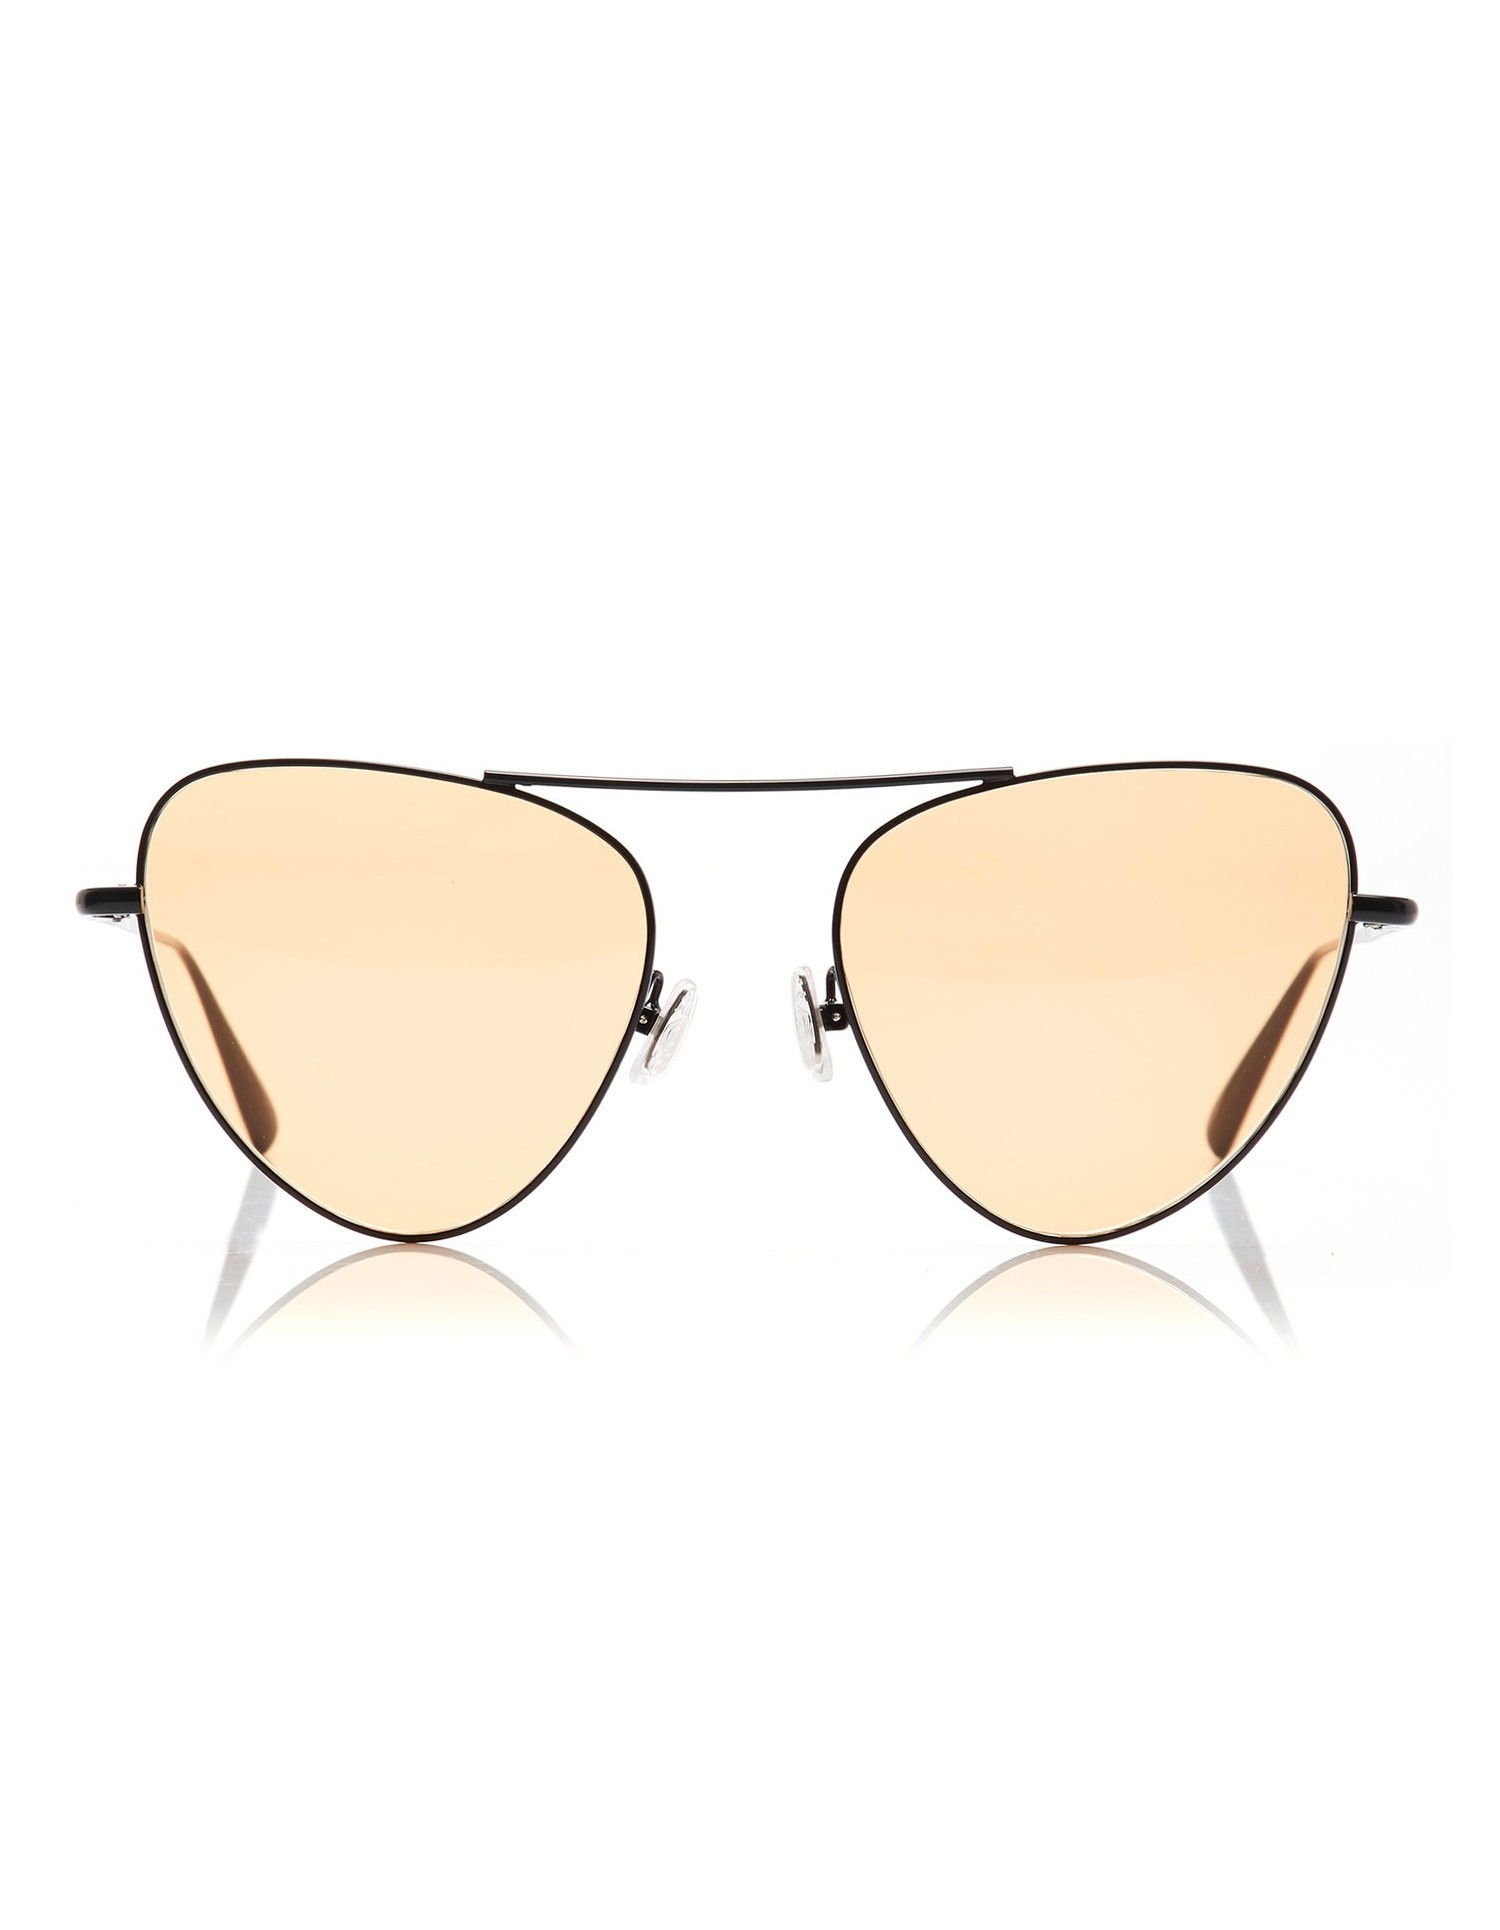 Monse Erika Sunglasses with Pale Pink Shades